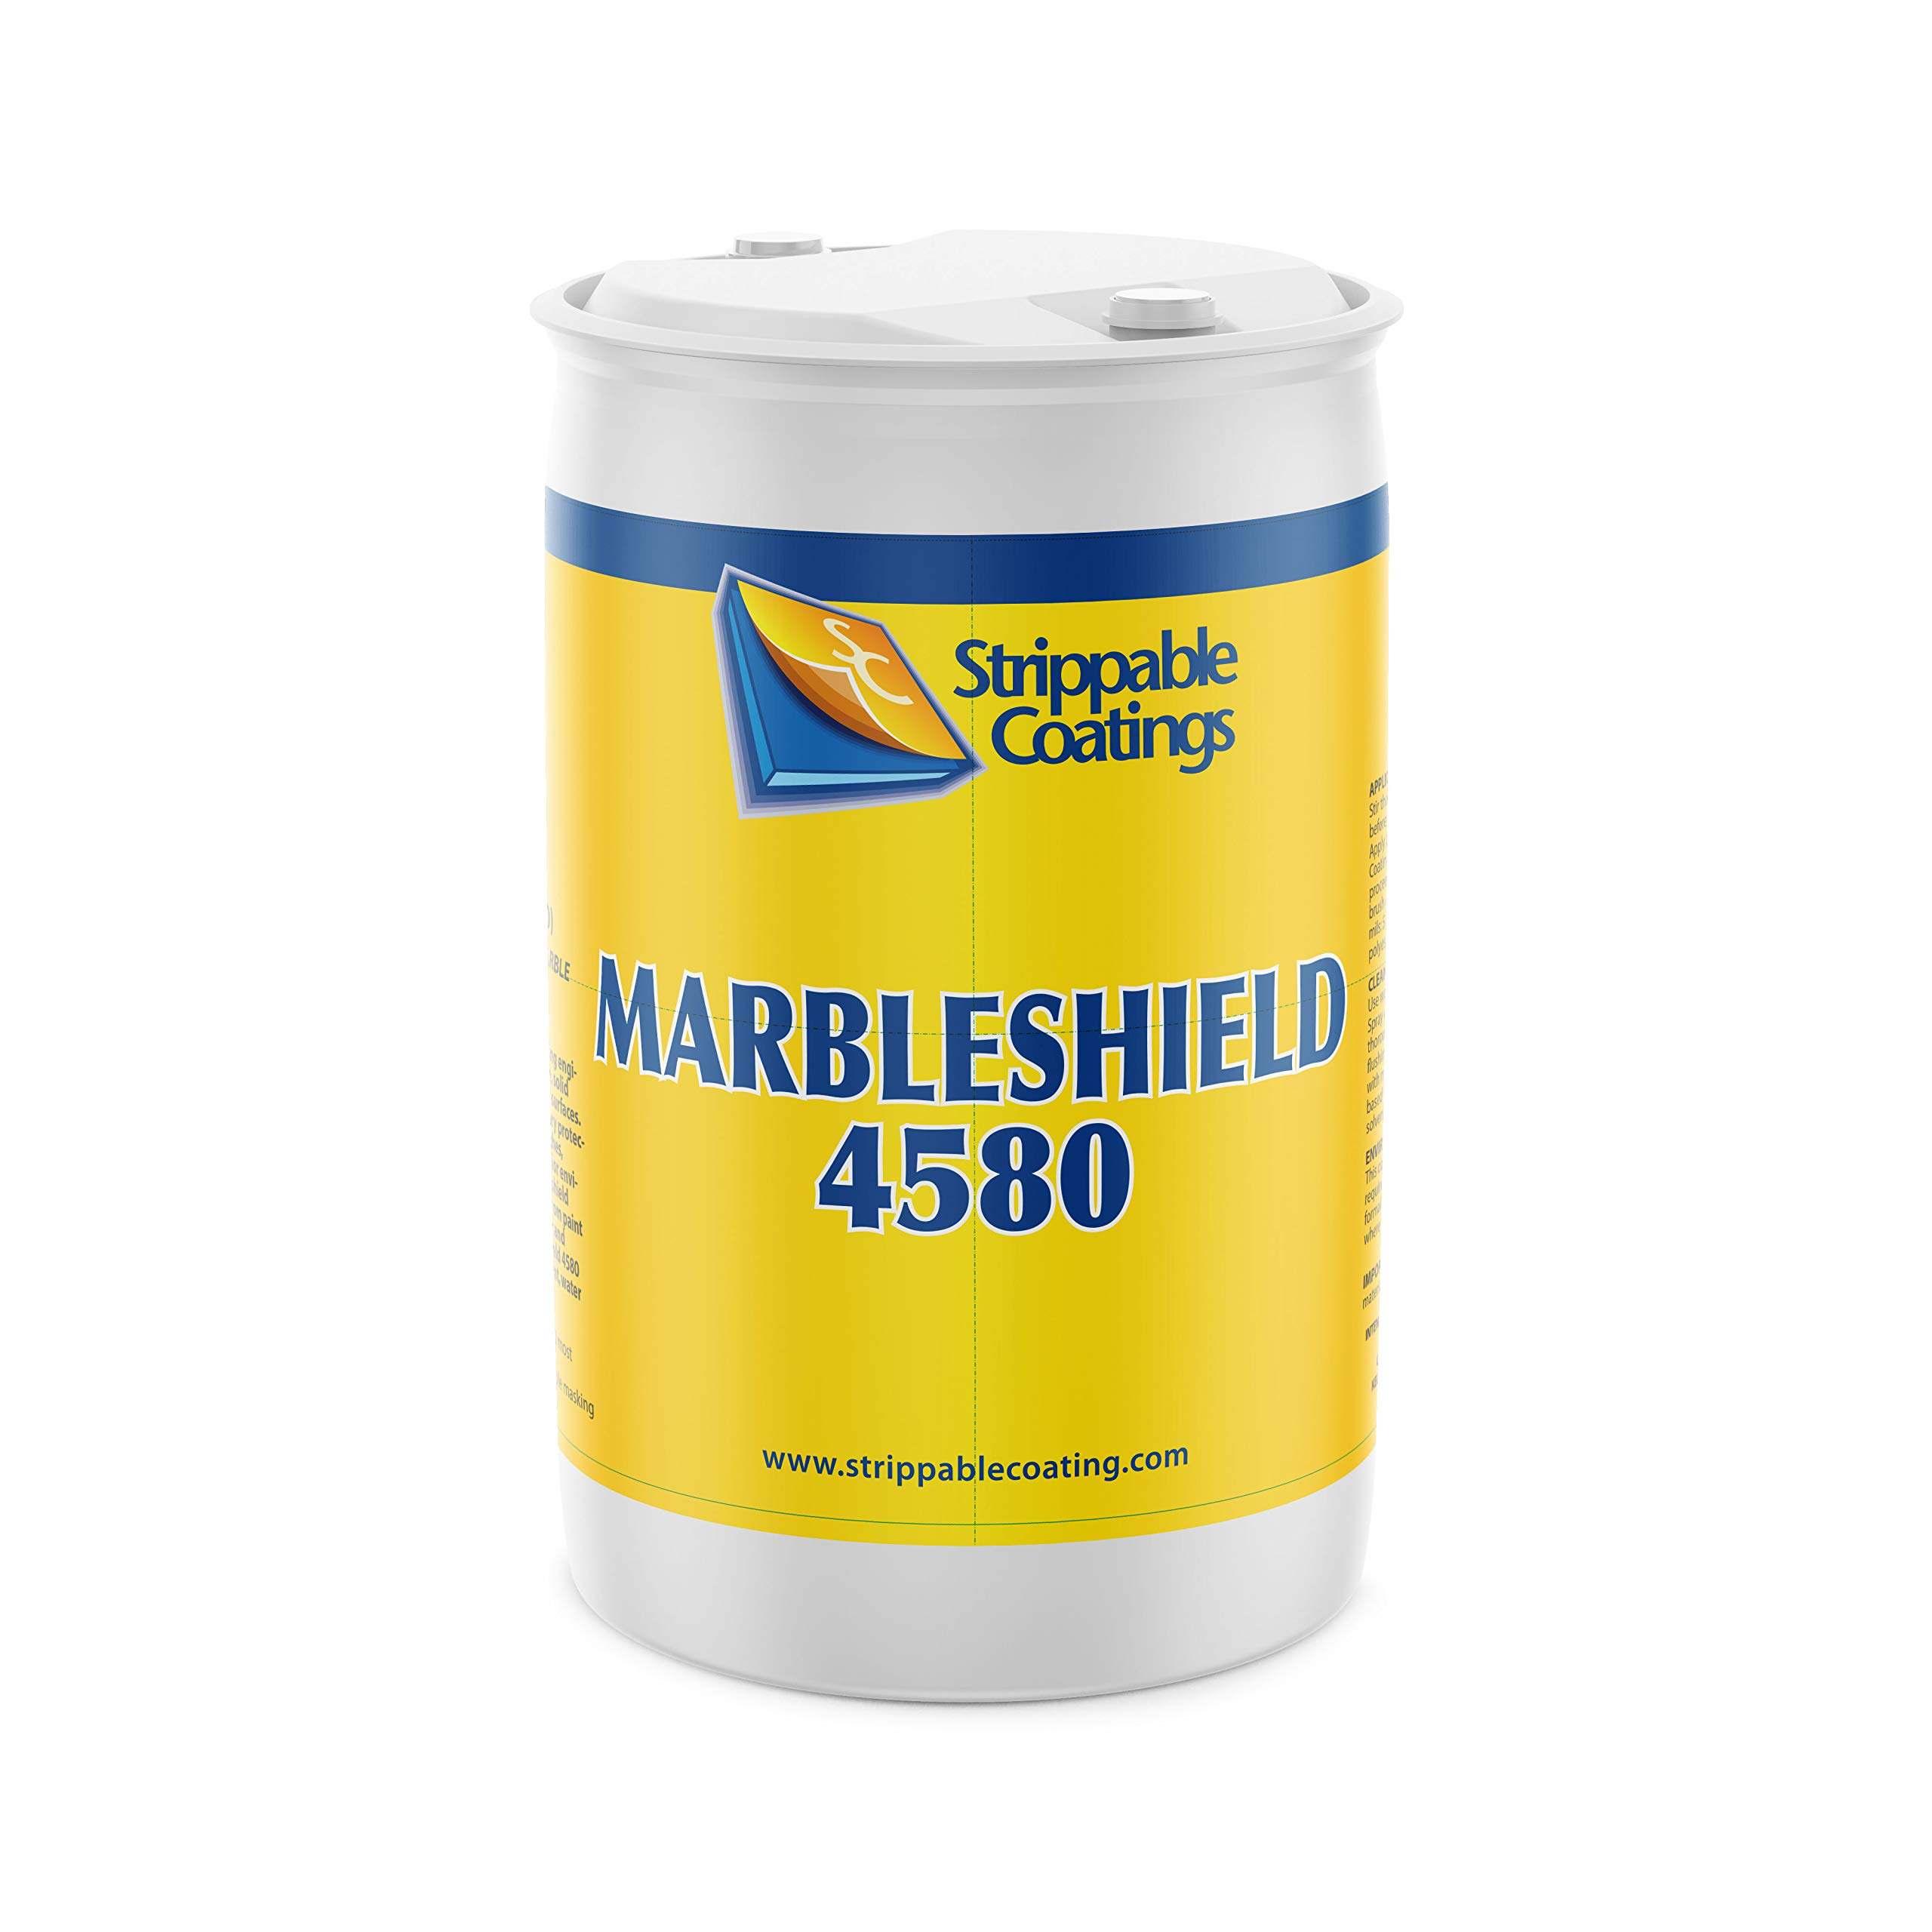 Strippable Coatings Marbleshield 4580-Peelable Protective Temporary Water Resistant Marble Coating-Safe for Granite, Enamel, Metal, Glass & Acrylic-55Gal by Strippable Coatings